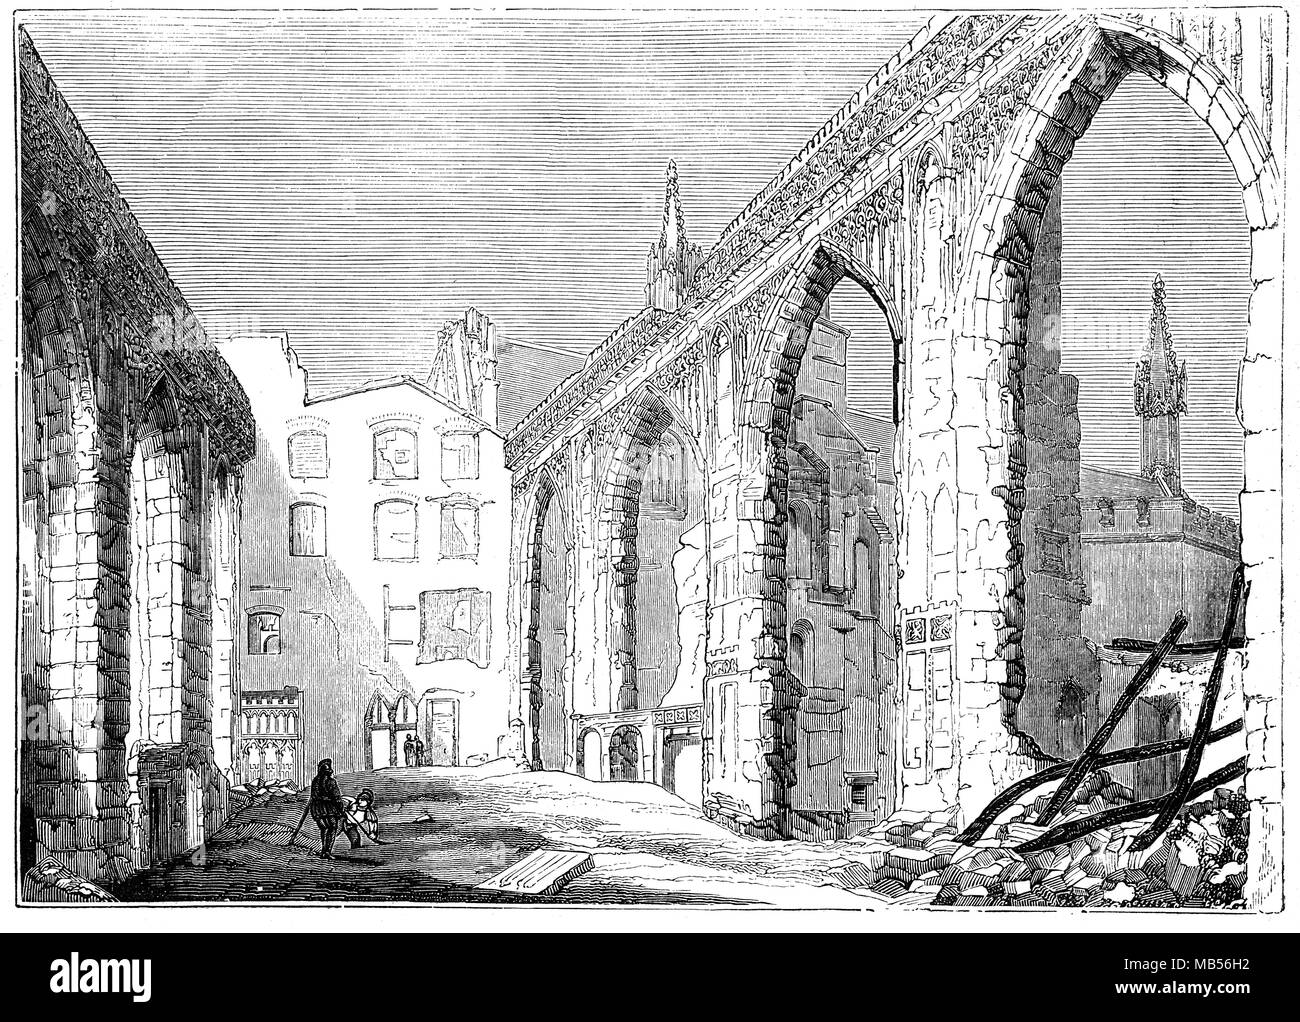 St Stephen's Chapel Ruins,  after the fire that destroyed the Palace of Westminster on 16 October 1834. Scattered throughout the Chapel are pieces of masonry from the destroyed House of Commons (formerly St Stephen's Chapel) above. During the construction of the new Palace of Westminster there was much debate about whether to reinstate the space as a chapel. - Stock Image